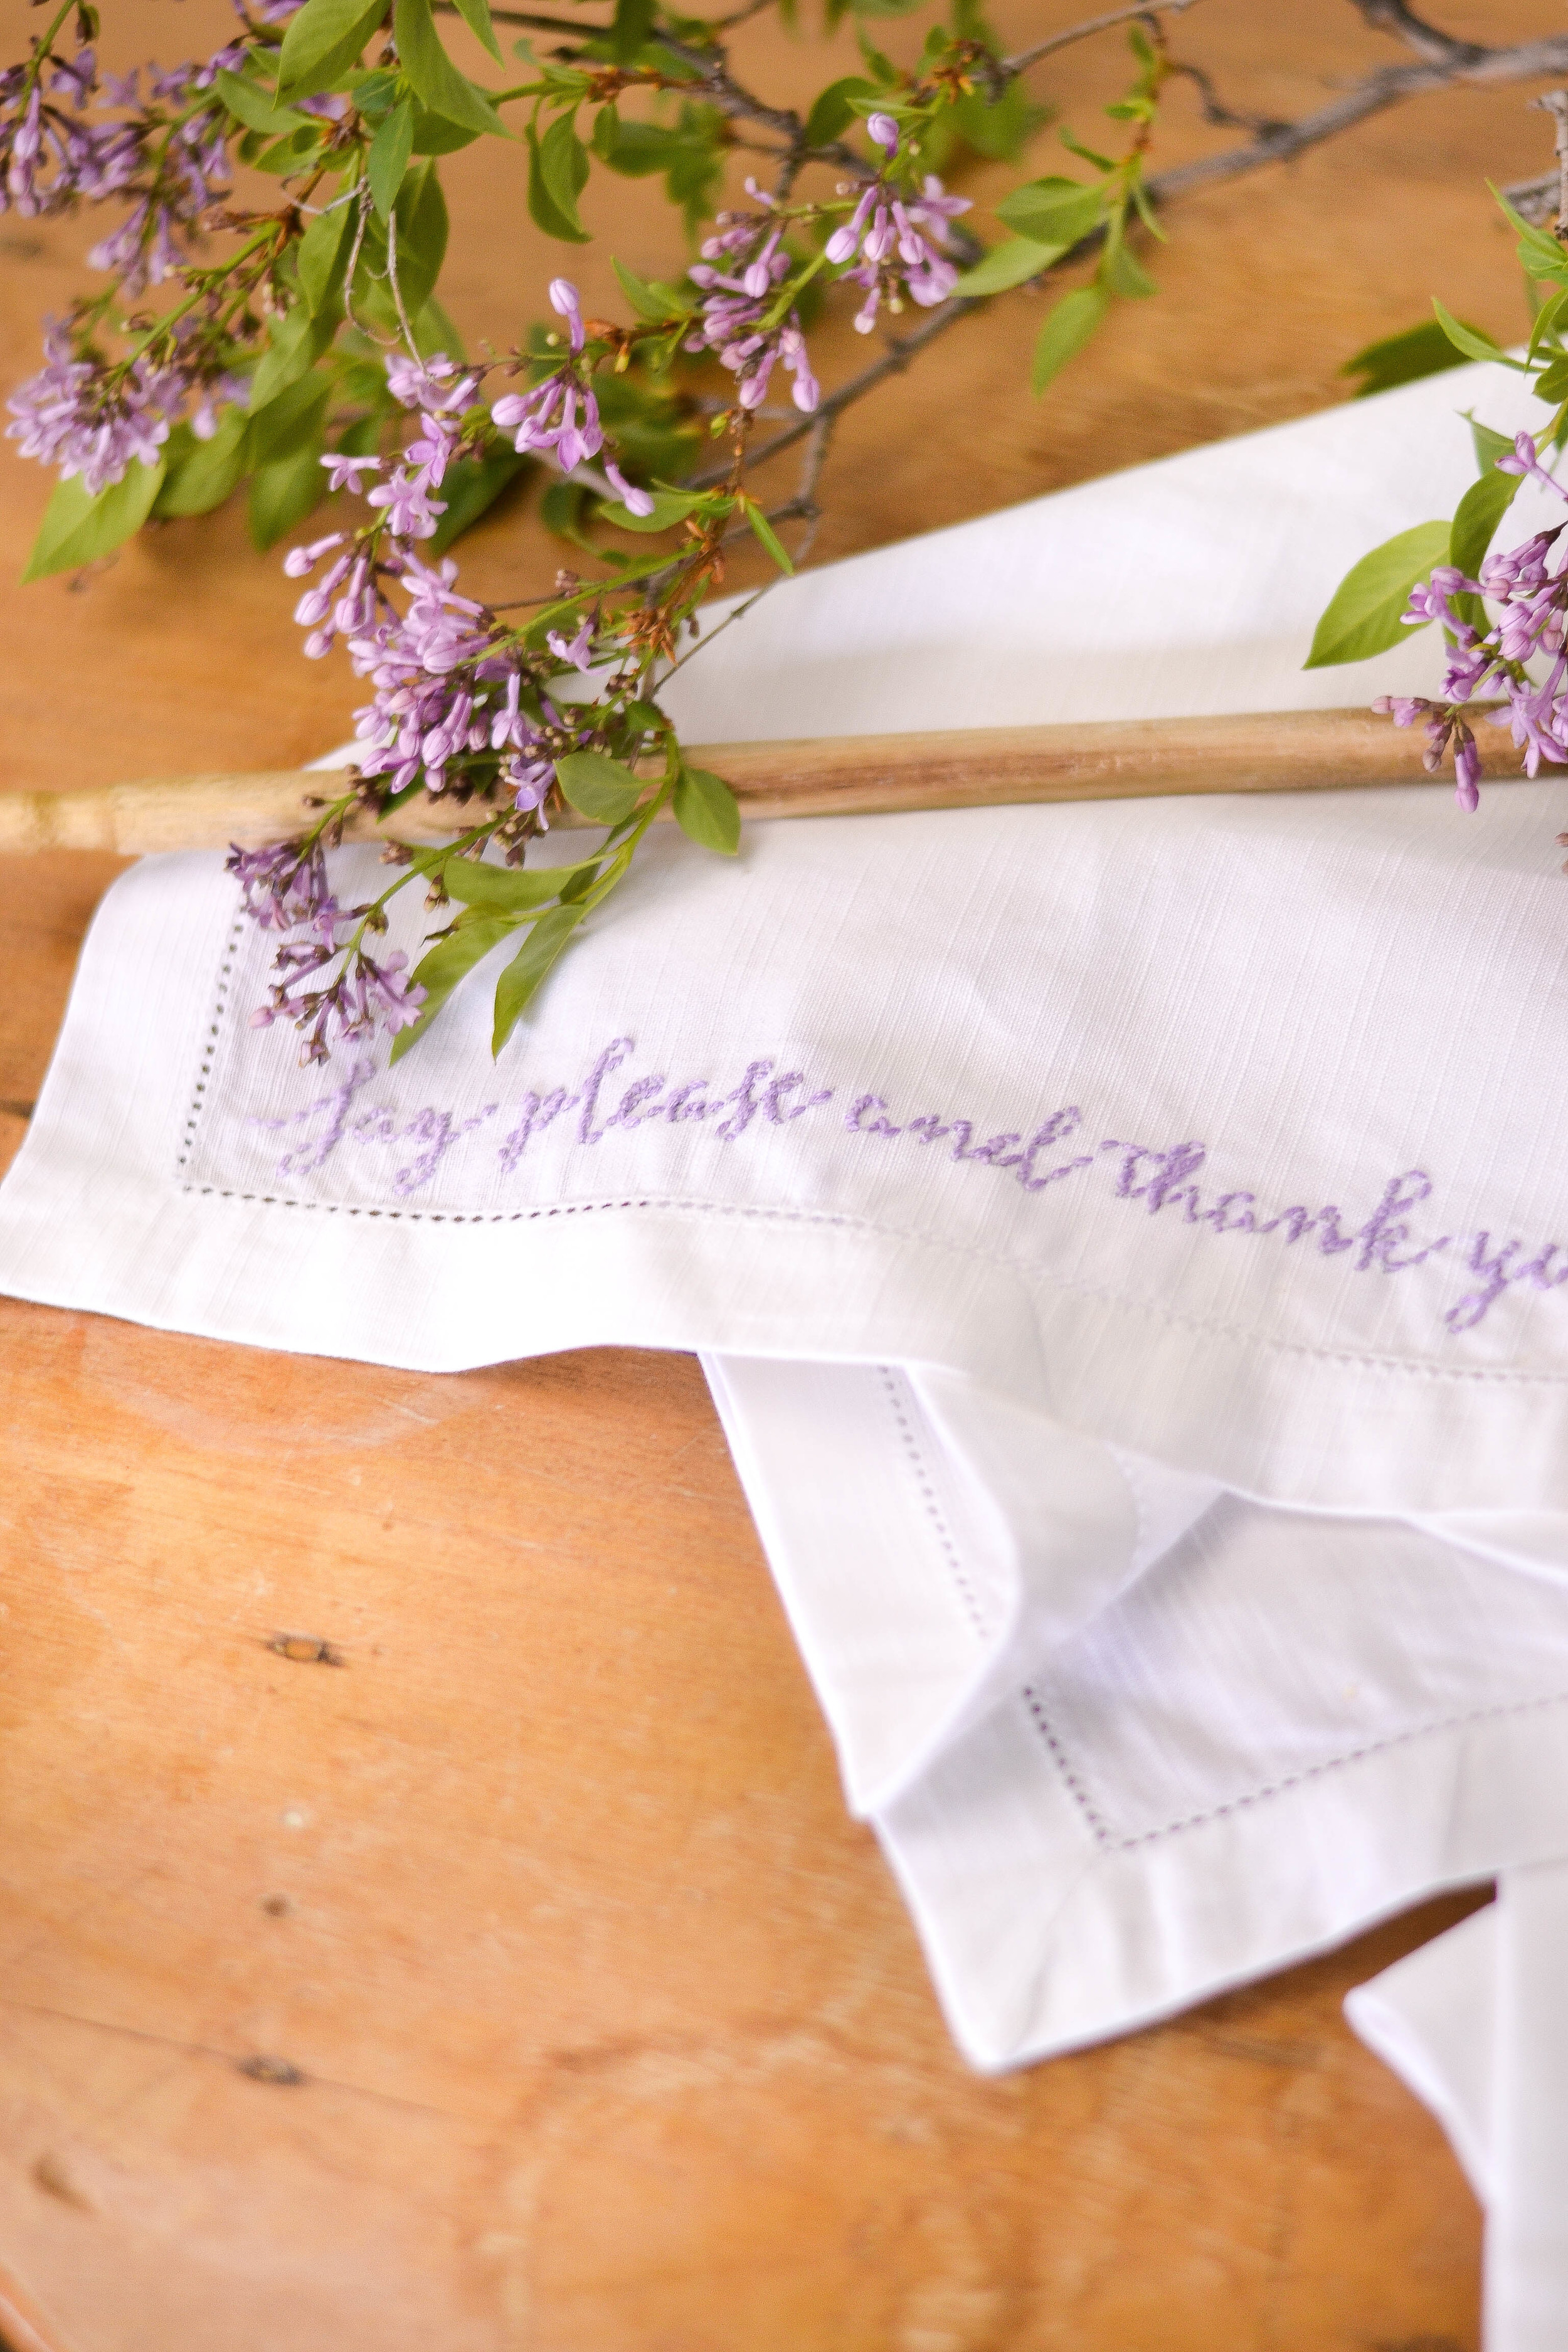 DIY Embroidered Napkins with Quotes for Mother's Day | boxwoodavenue.com